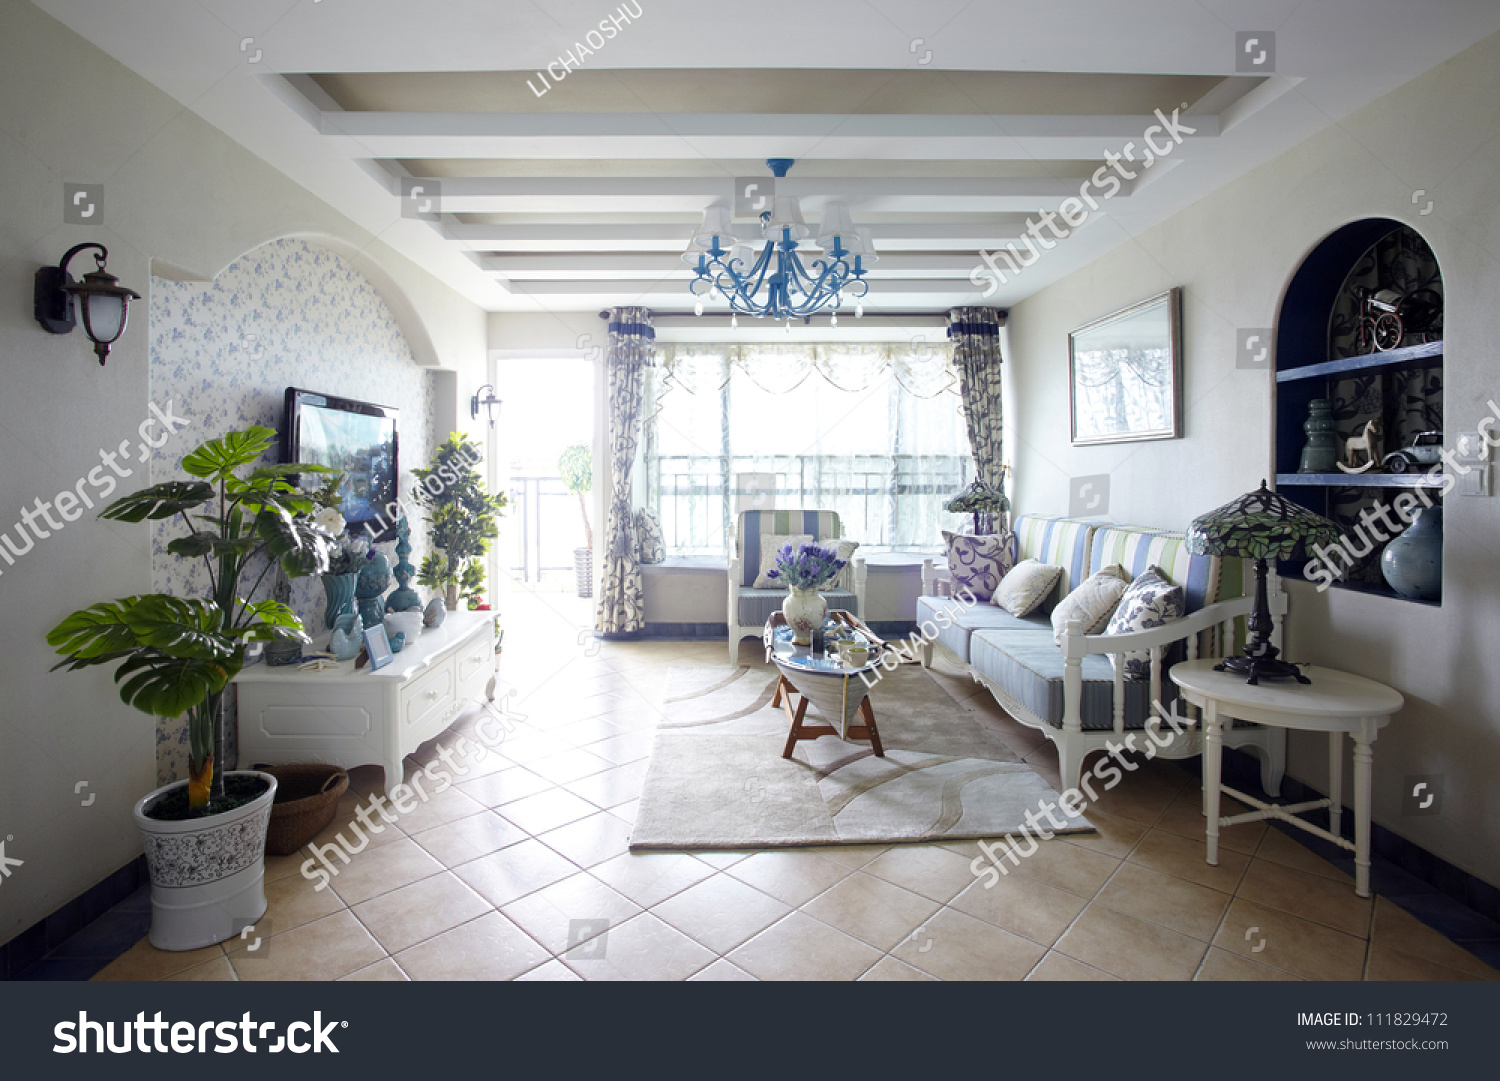 Mediterraneanstyle Living Room Interiors Stock Photo (Royalty Free ...